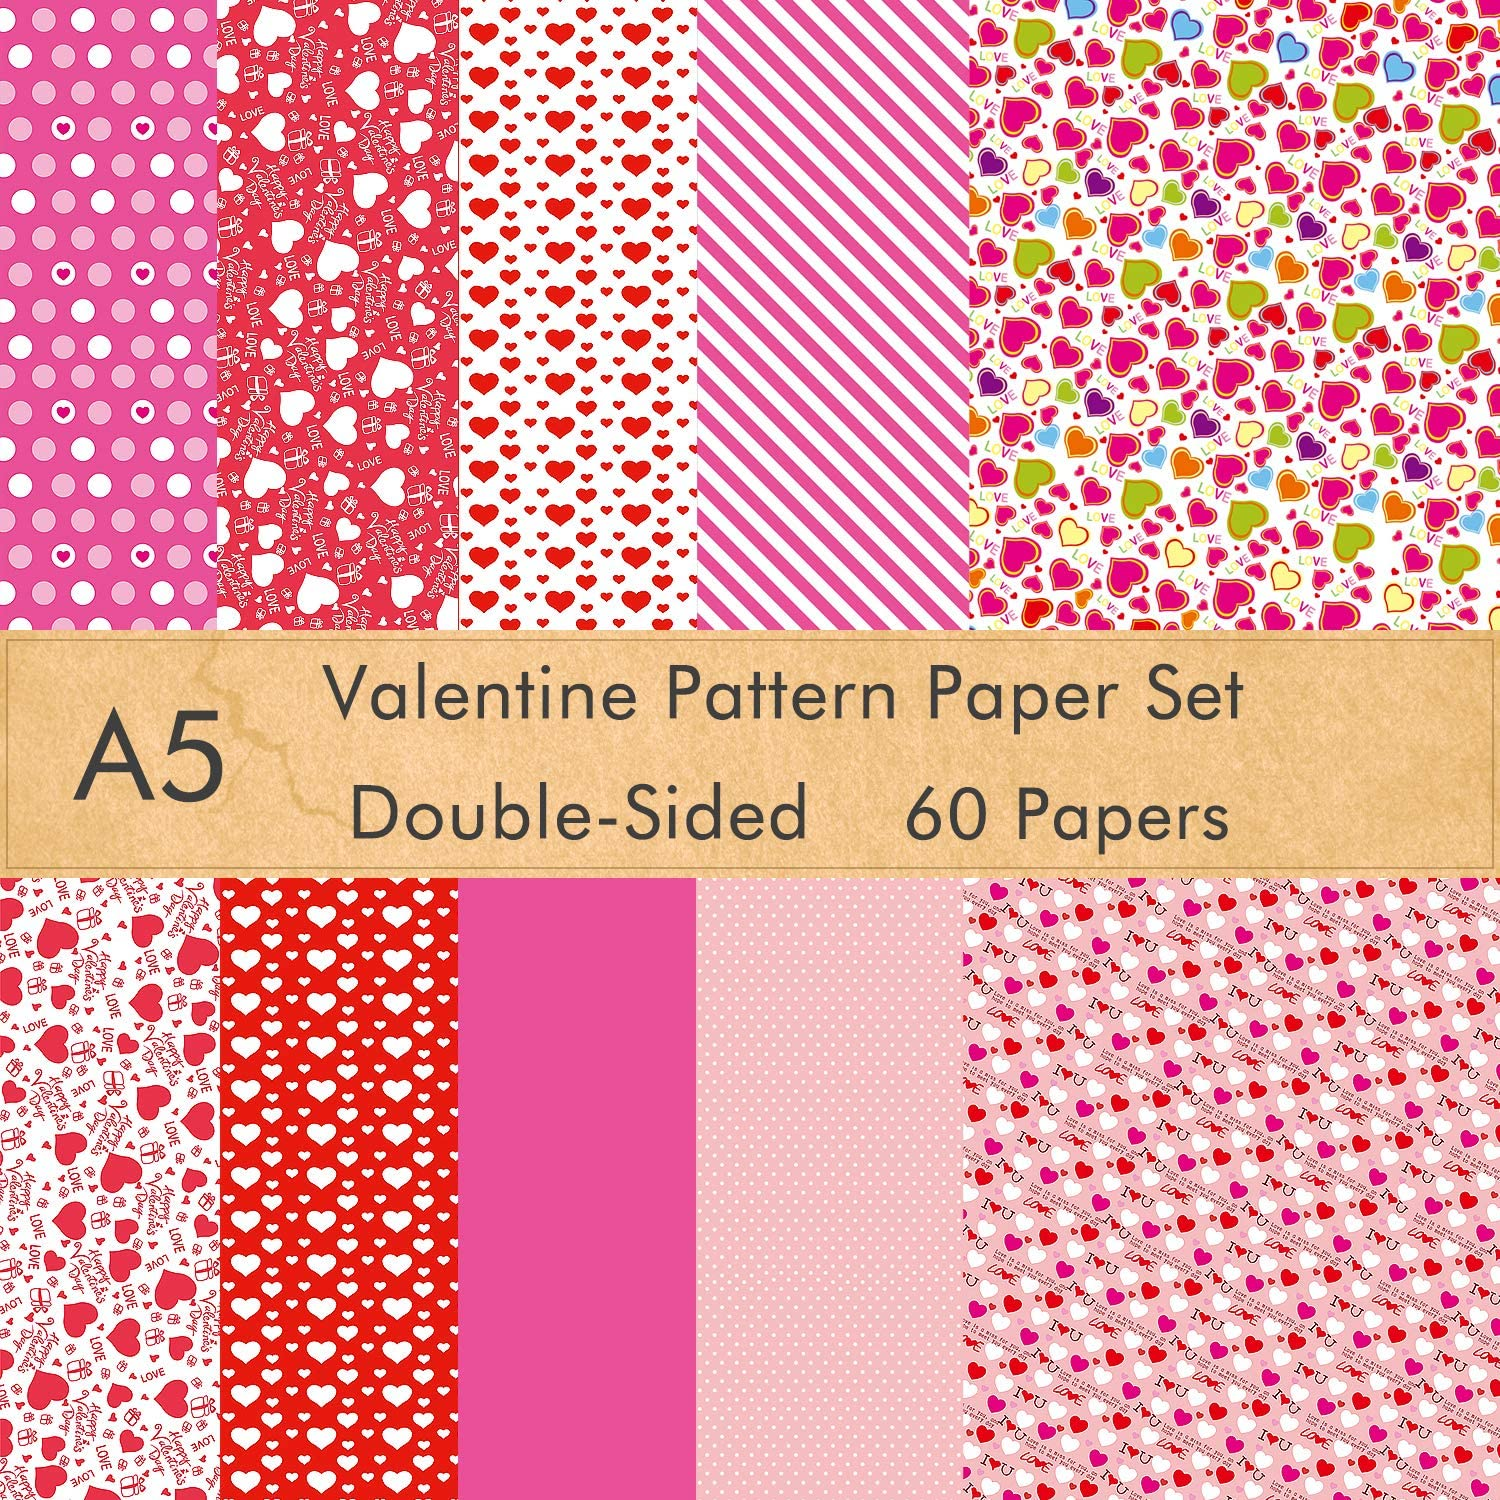 KUUQA 45 Sheets Valentine Pattern Paper Set 8.27 x 11.22 Inches Decorative Paper for Card Making Scrapbook Decoration Valentines Day Supplies 10 Designs